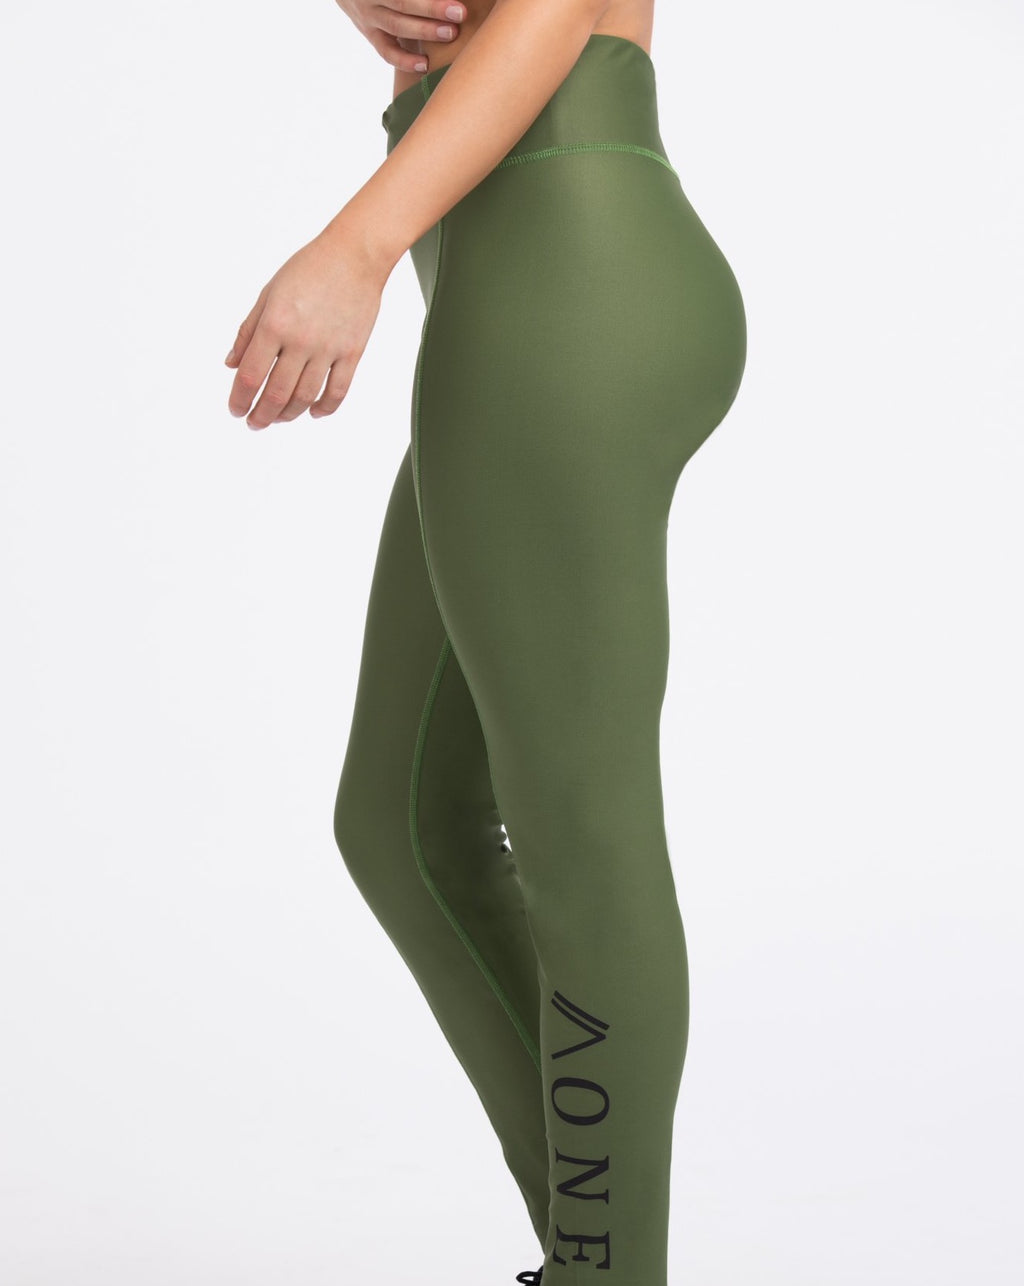 RELENTLESS - LEGGING khaki